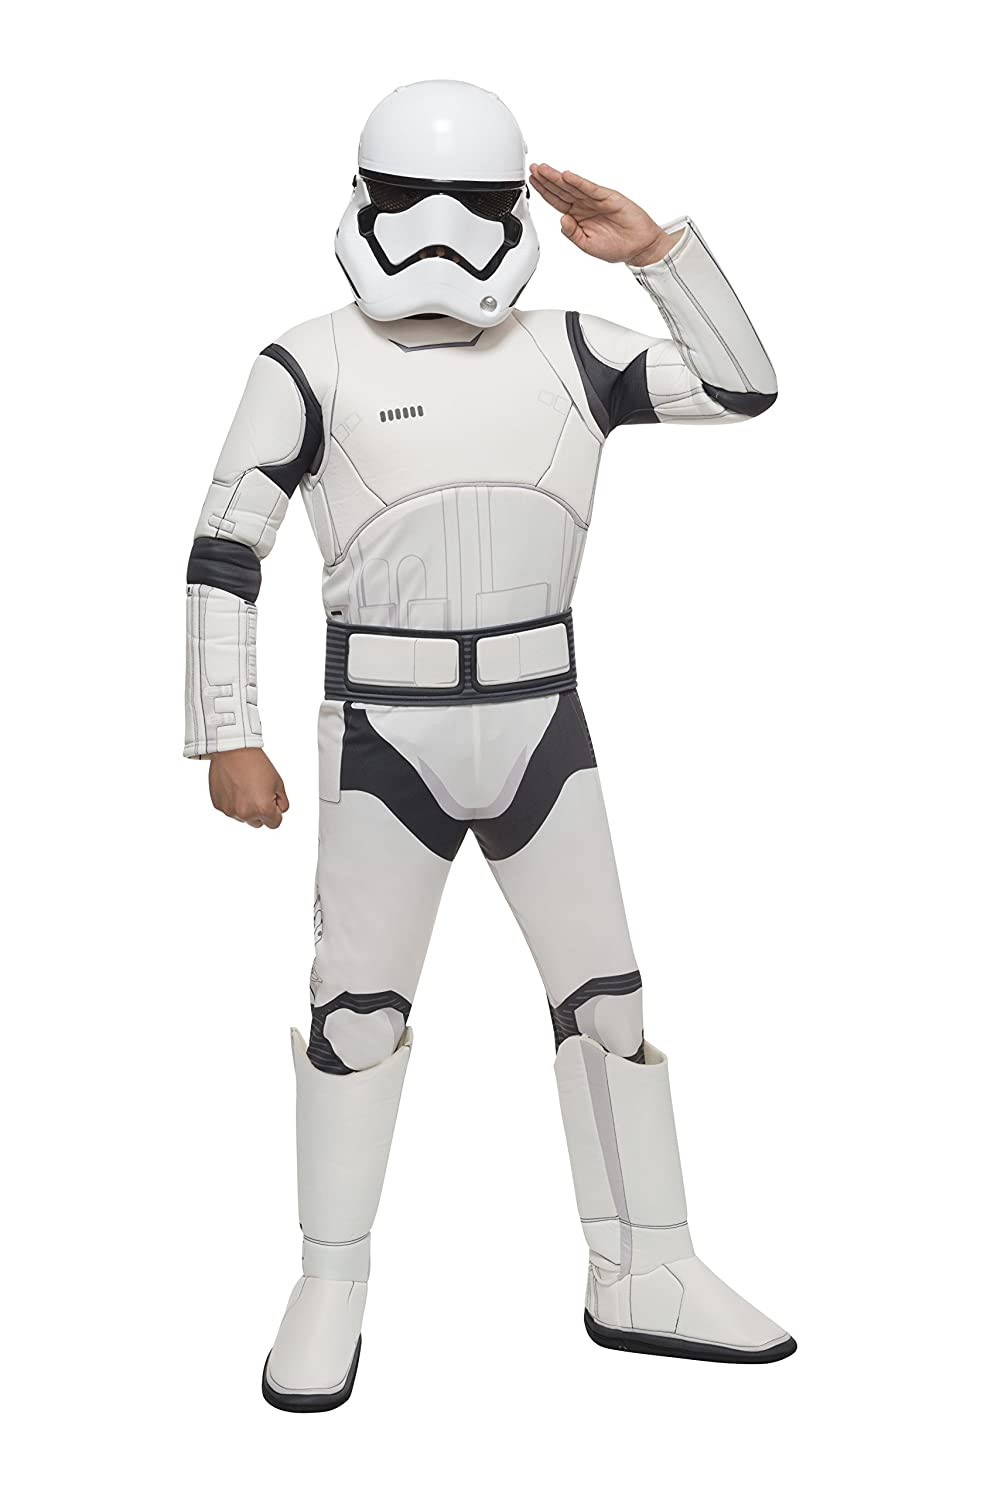 Amazon.com Star Wars VII The Force Awakens Deluxe Childu0027s Stormtrooper Costume and Mask Large Toys u0026 Games  sc 1 st  Amazon.com & Amazon.com: Star Wars VII: The Force Awakens Deluxe Childu0027s ...